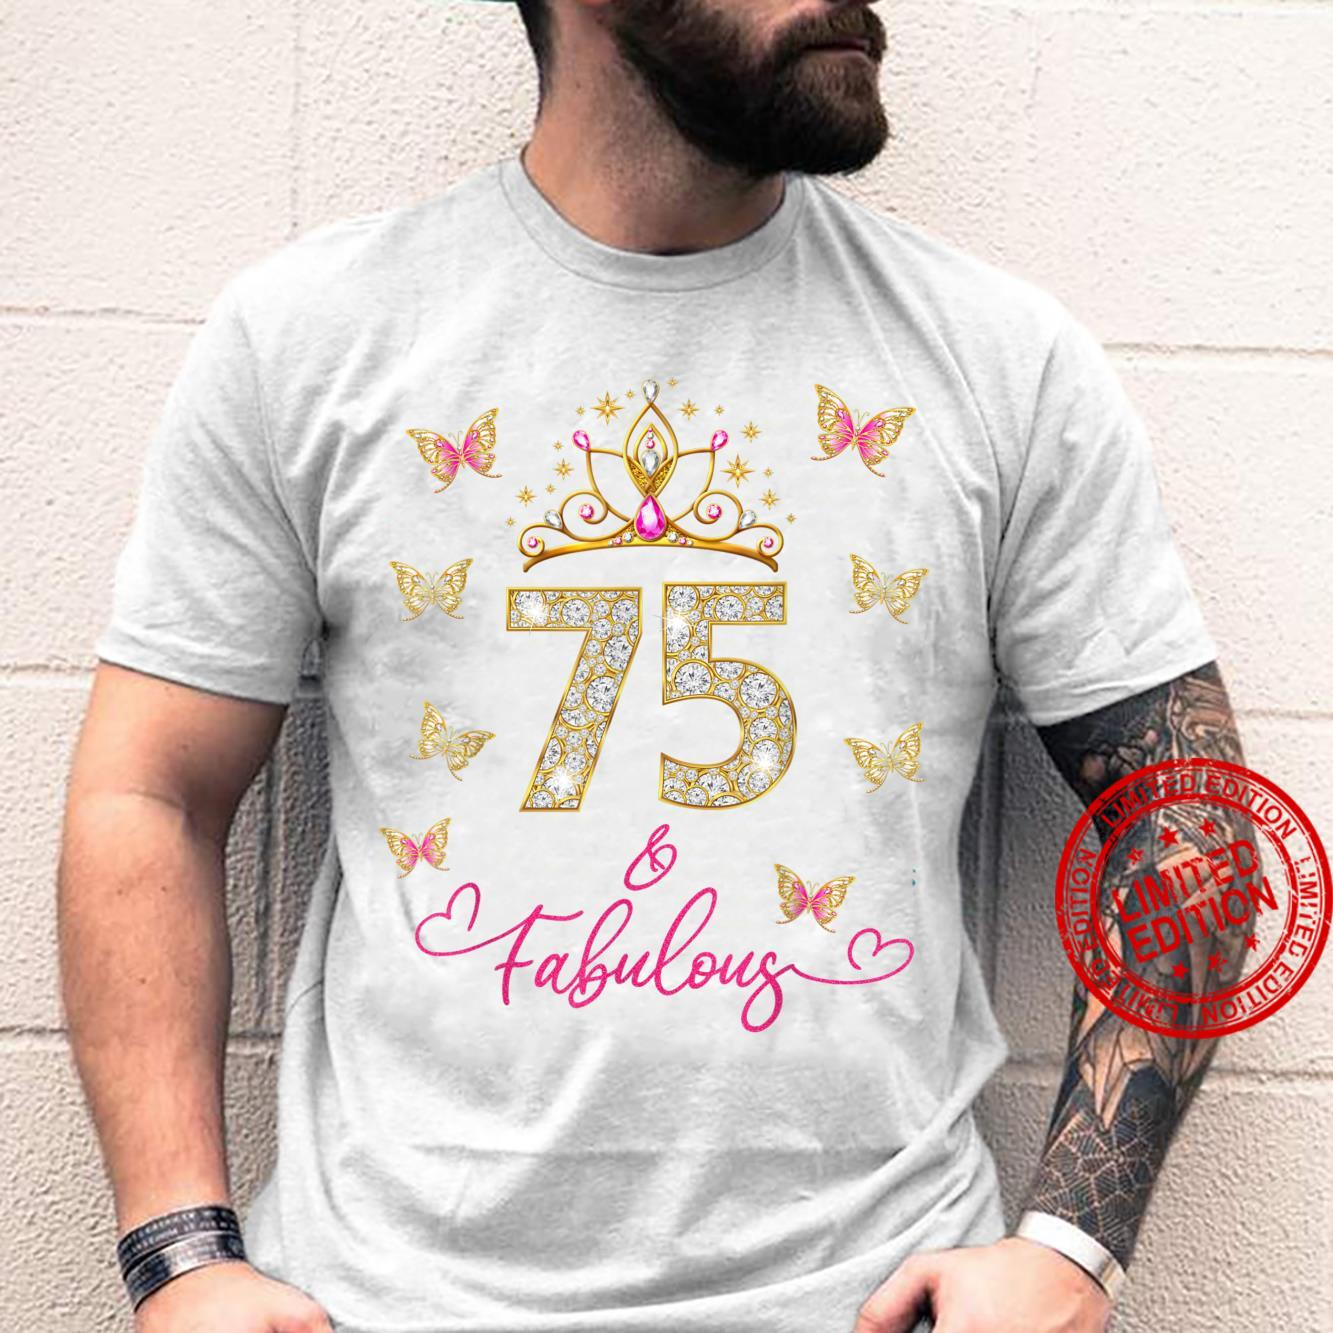 75 And Fabulous, 75 Years Old, 75th Birthday Shirt